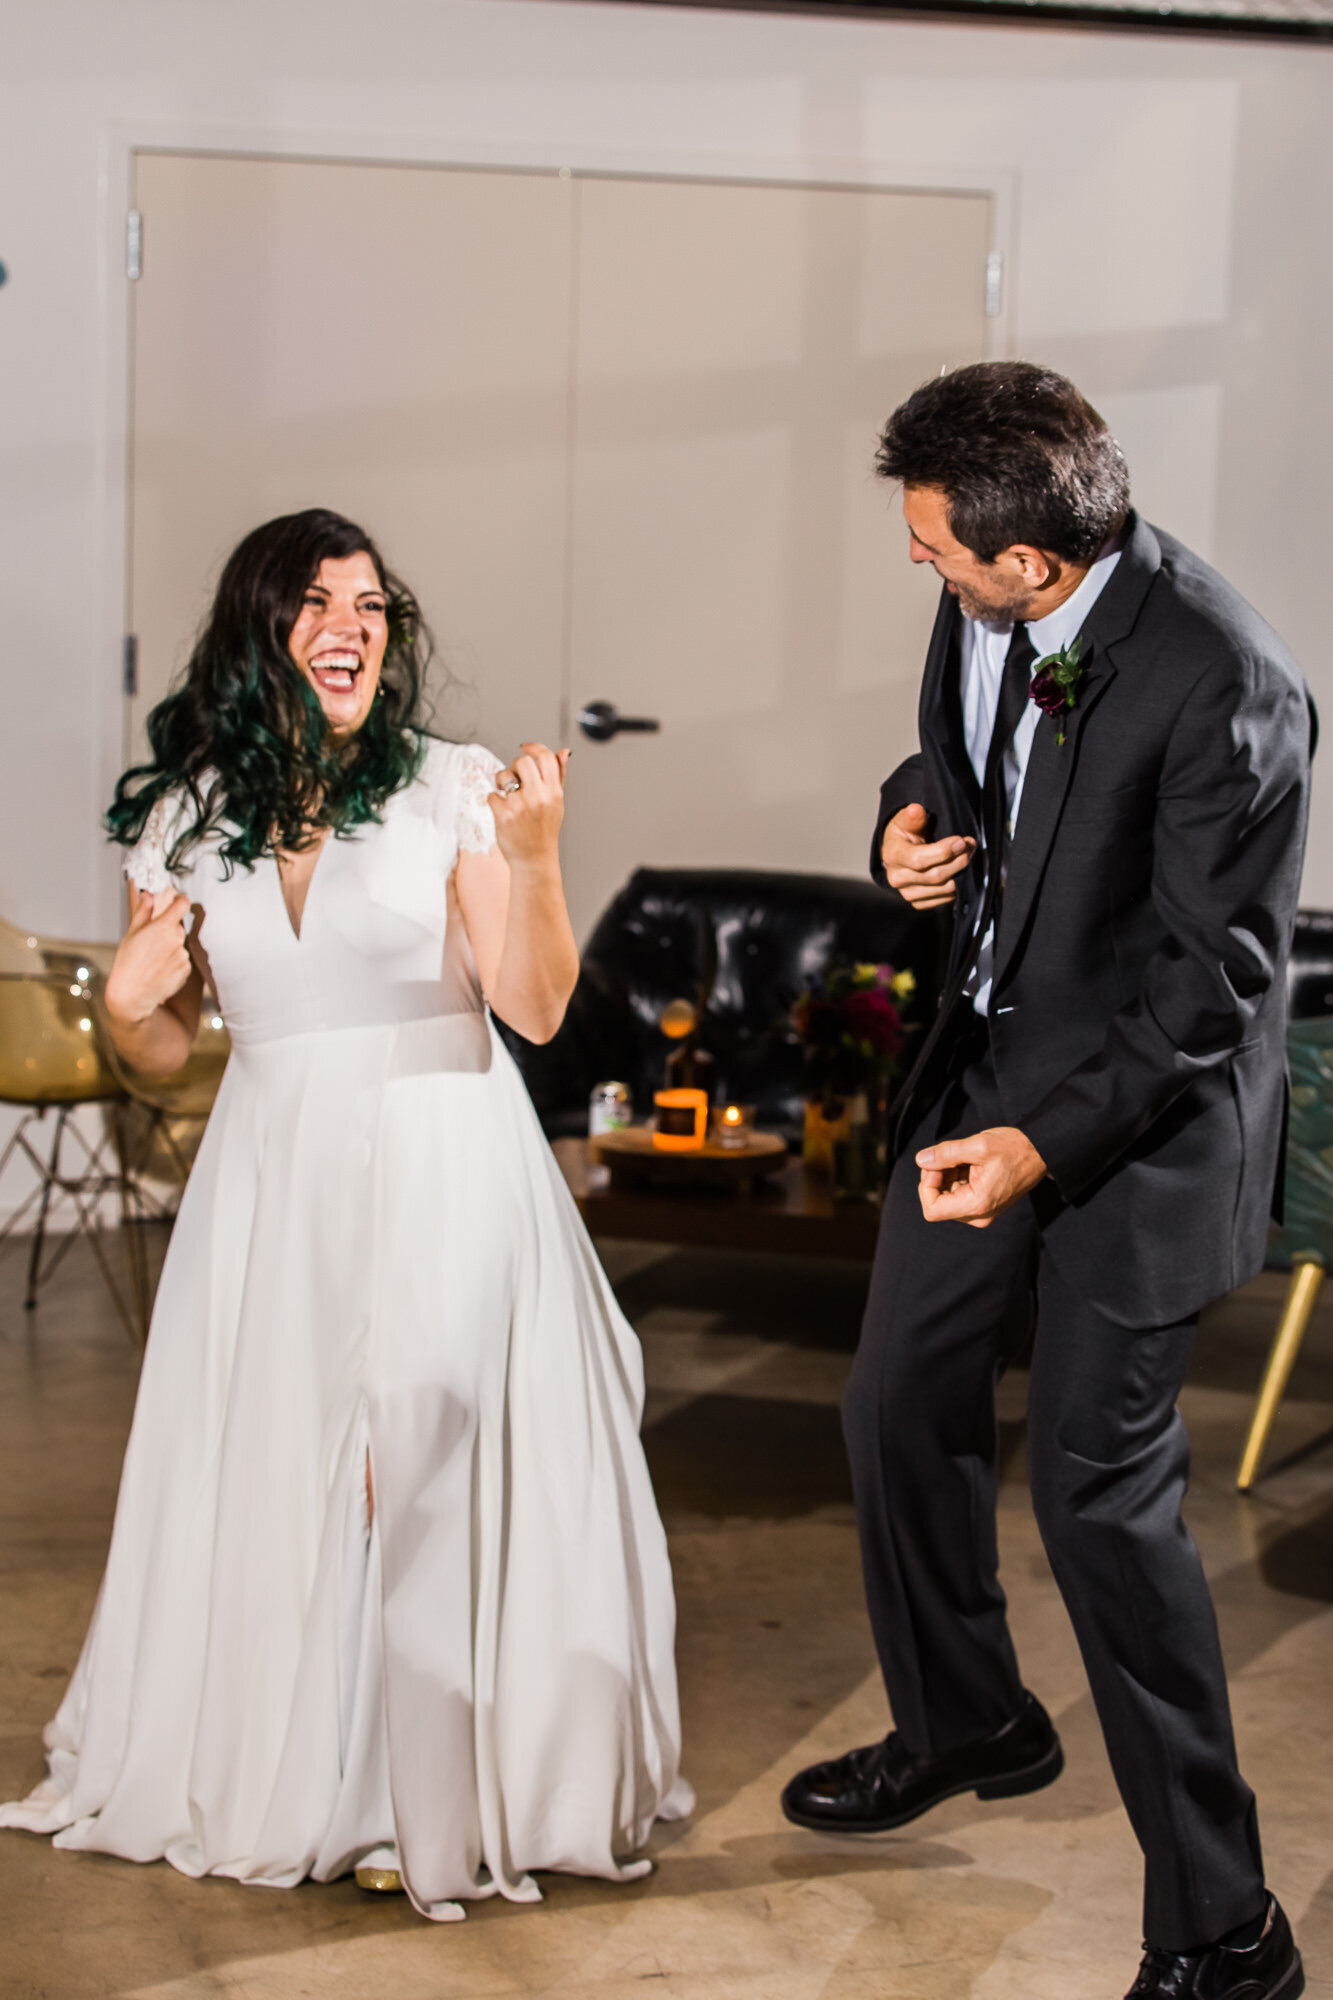 Fun father daughter dance at Wild Carrot wedding reception in St. Louis